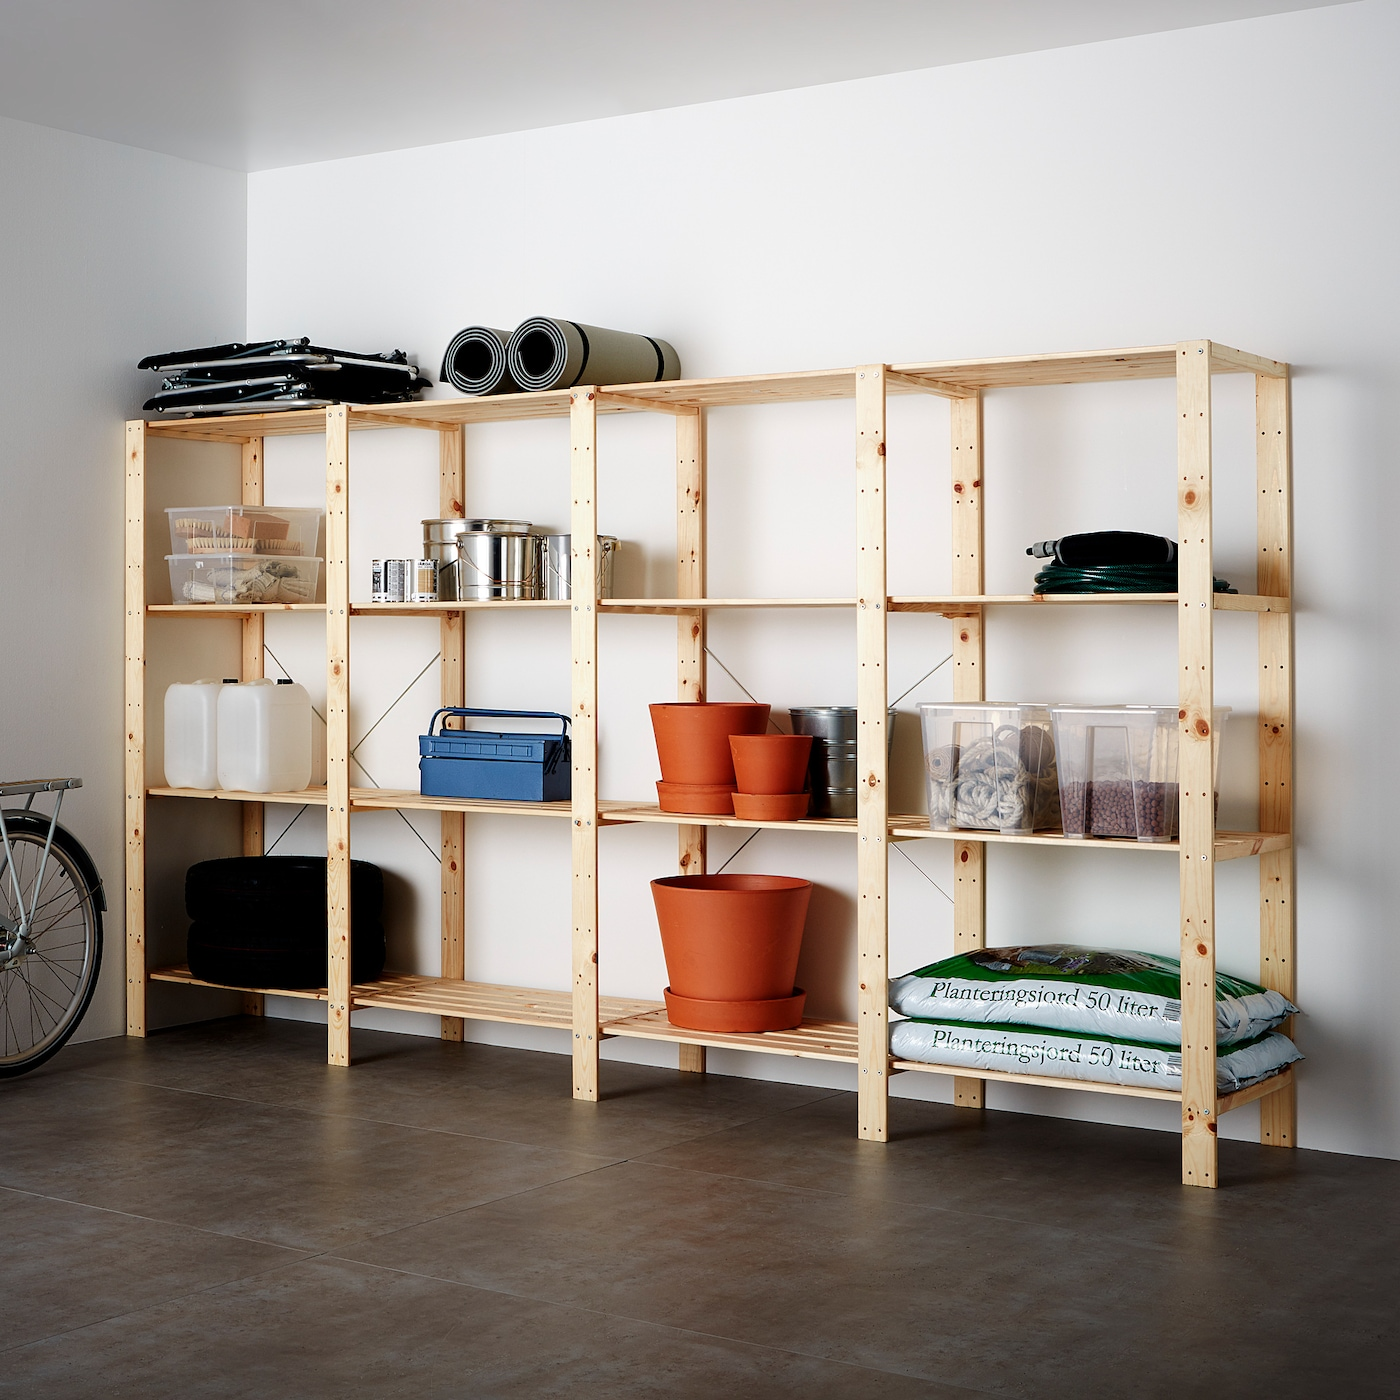 HEJNE 4 sections/shelves, softwood, 307x50x171 cm